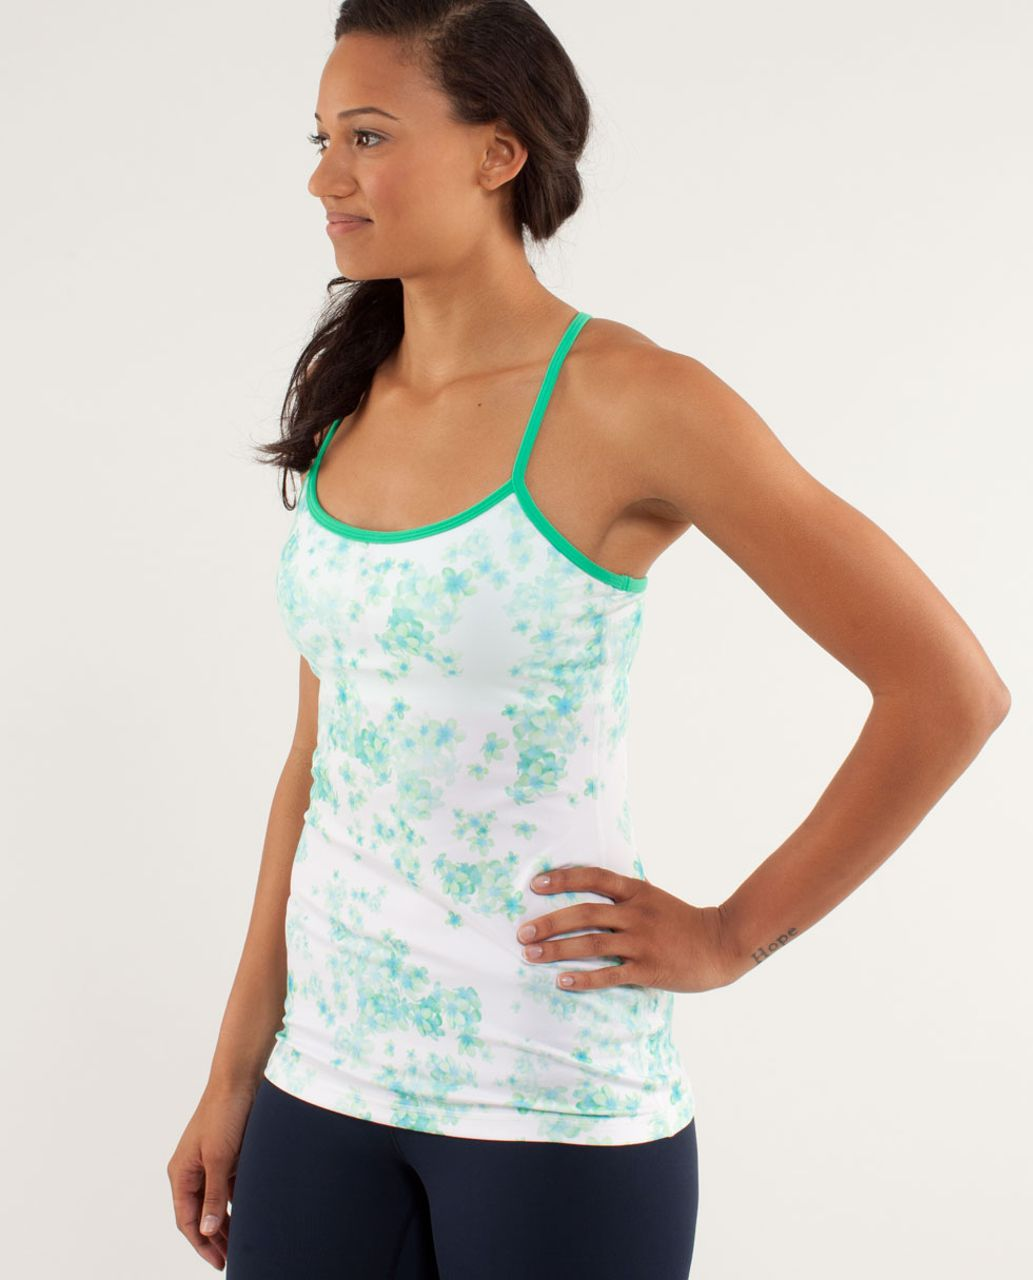 Lululemon Power Y Tank *Luon Light - Frangipani Very Green / Very Green